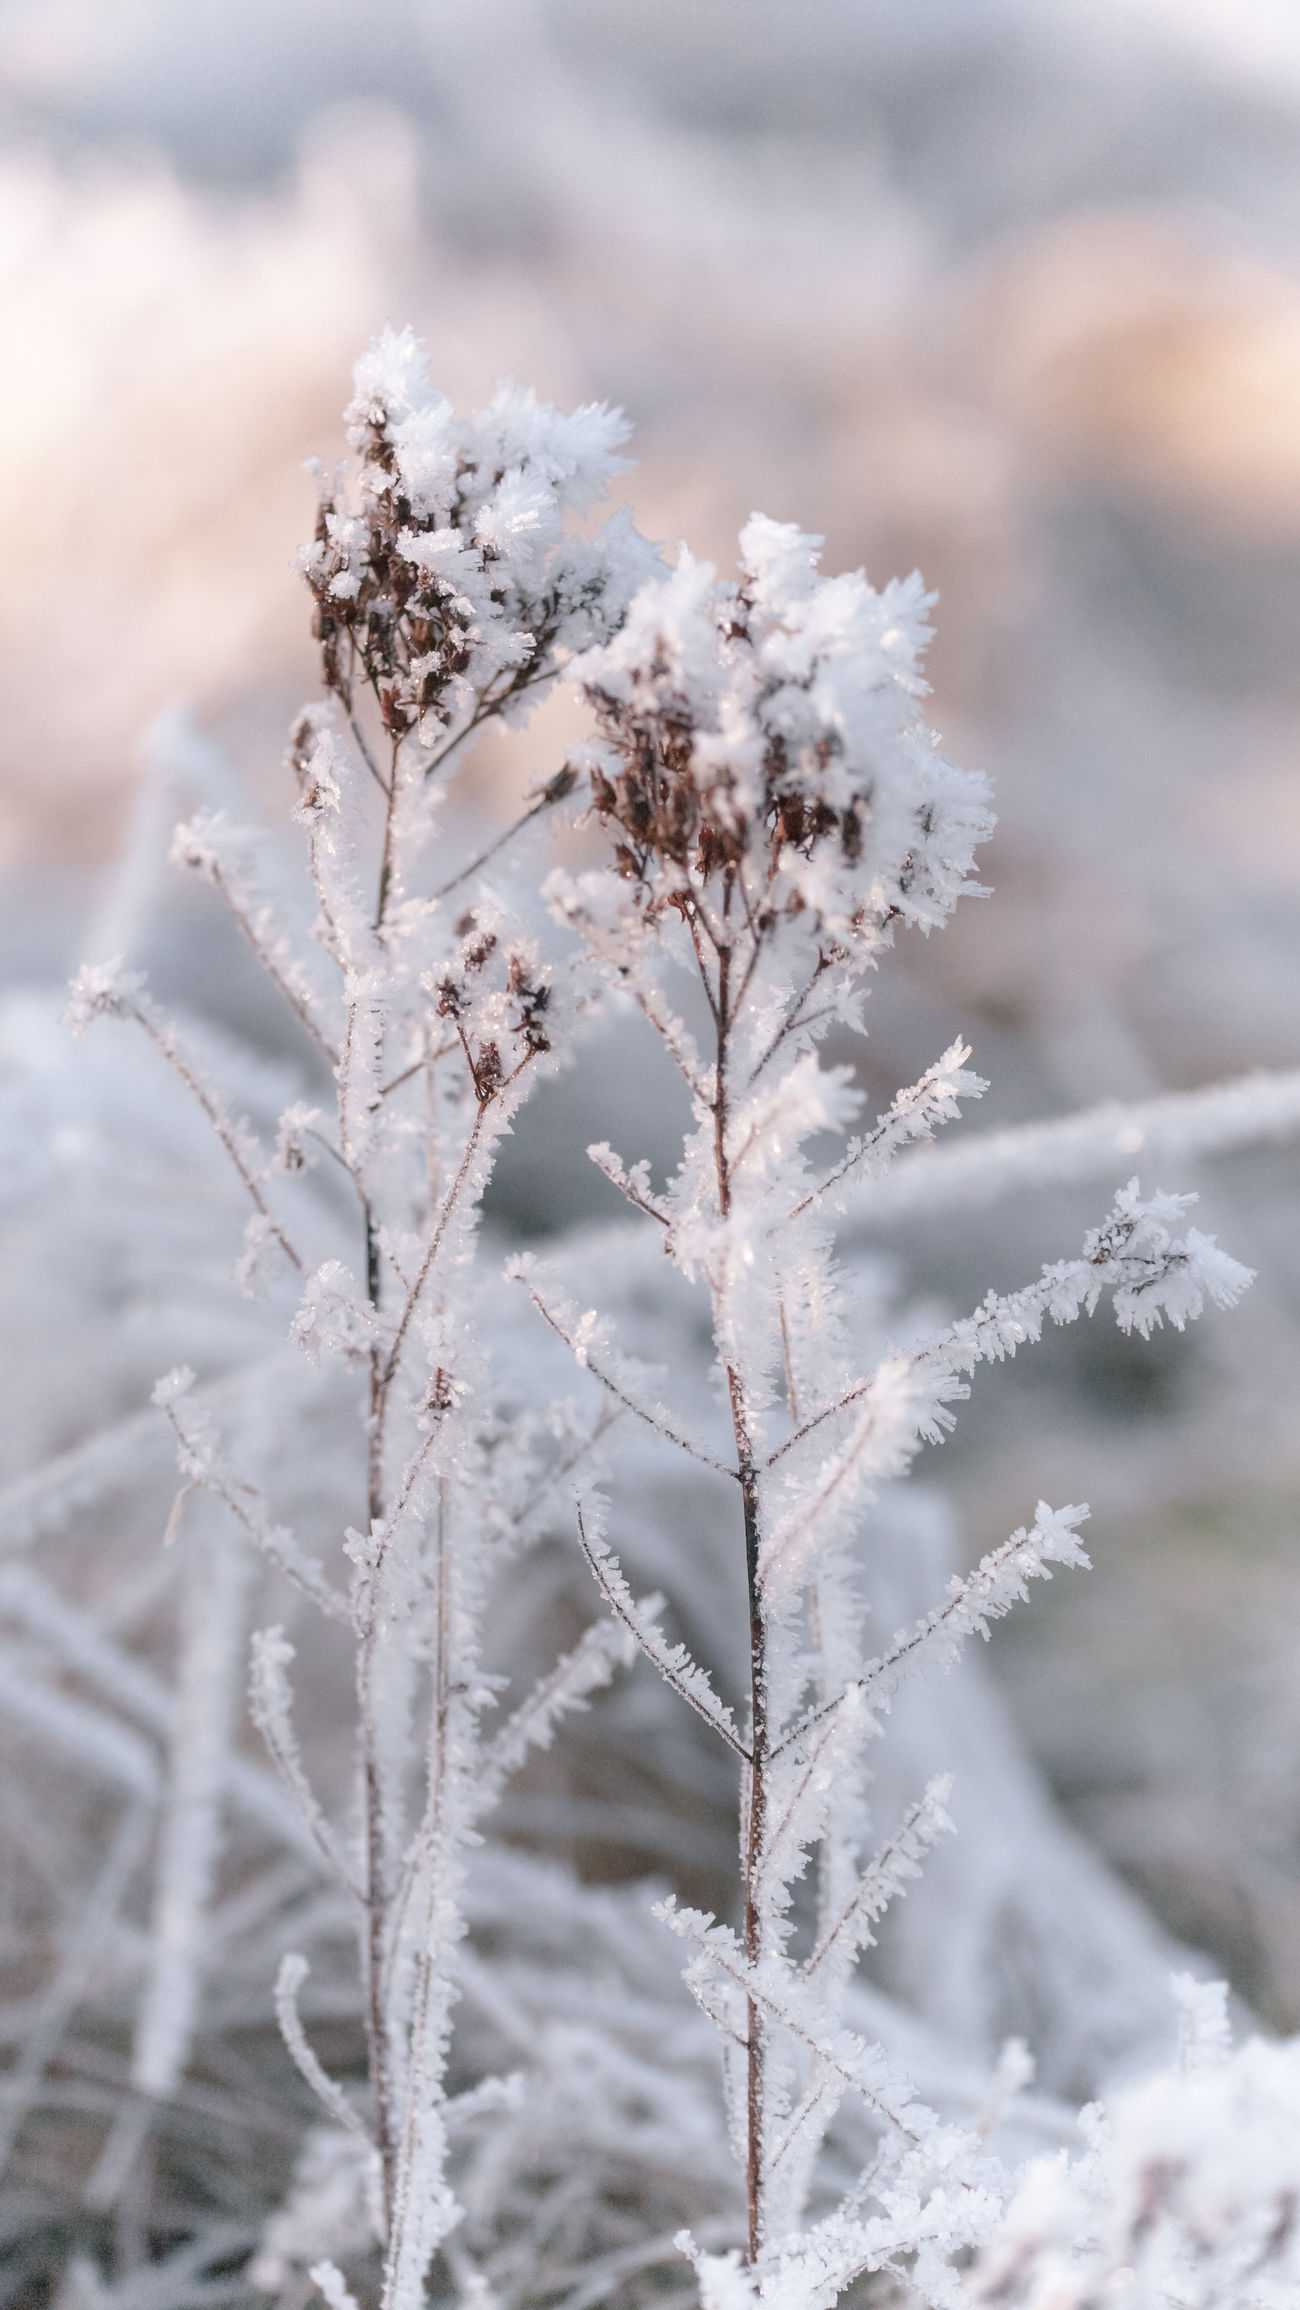 🌱❄️ 16x9 Beautiful Nature Blizzard Close-up Cold Days Cold Temperature EyeEm EyeEm Gallery EyeEm Masterclass Fragility I LOVE PHOTOGRAPHY Ice Macro Meadow Nature Nature Nature On Your Doorstep Nature_collection Plants Silence Simple Quiet Love Tranquility Winter Wintertime Winterwonderland